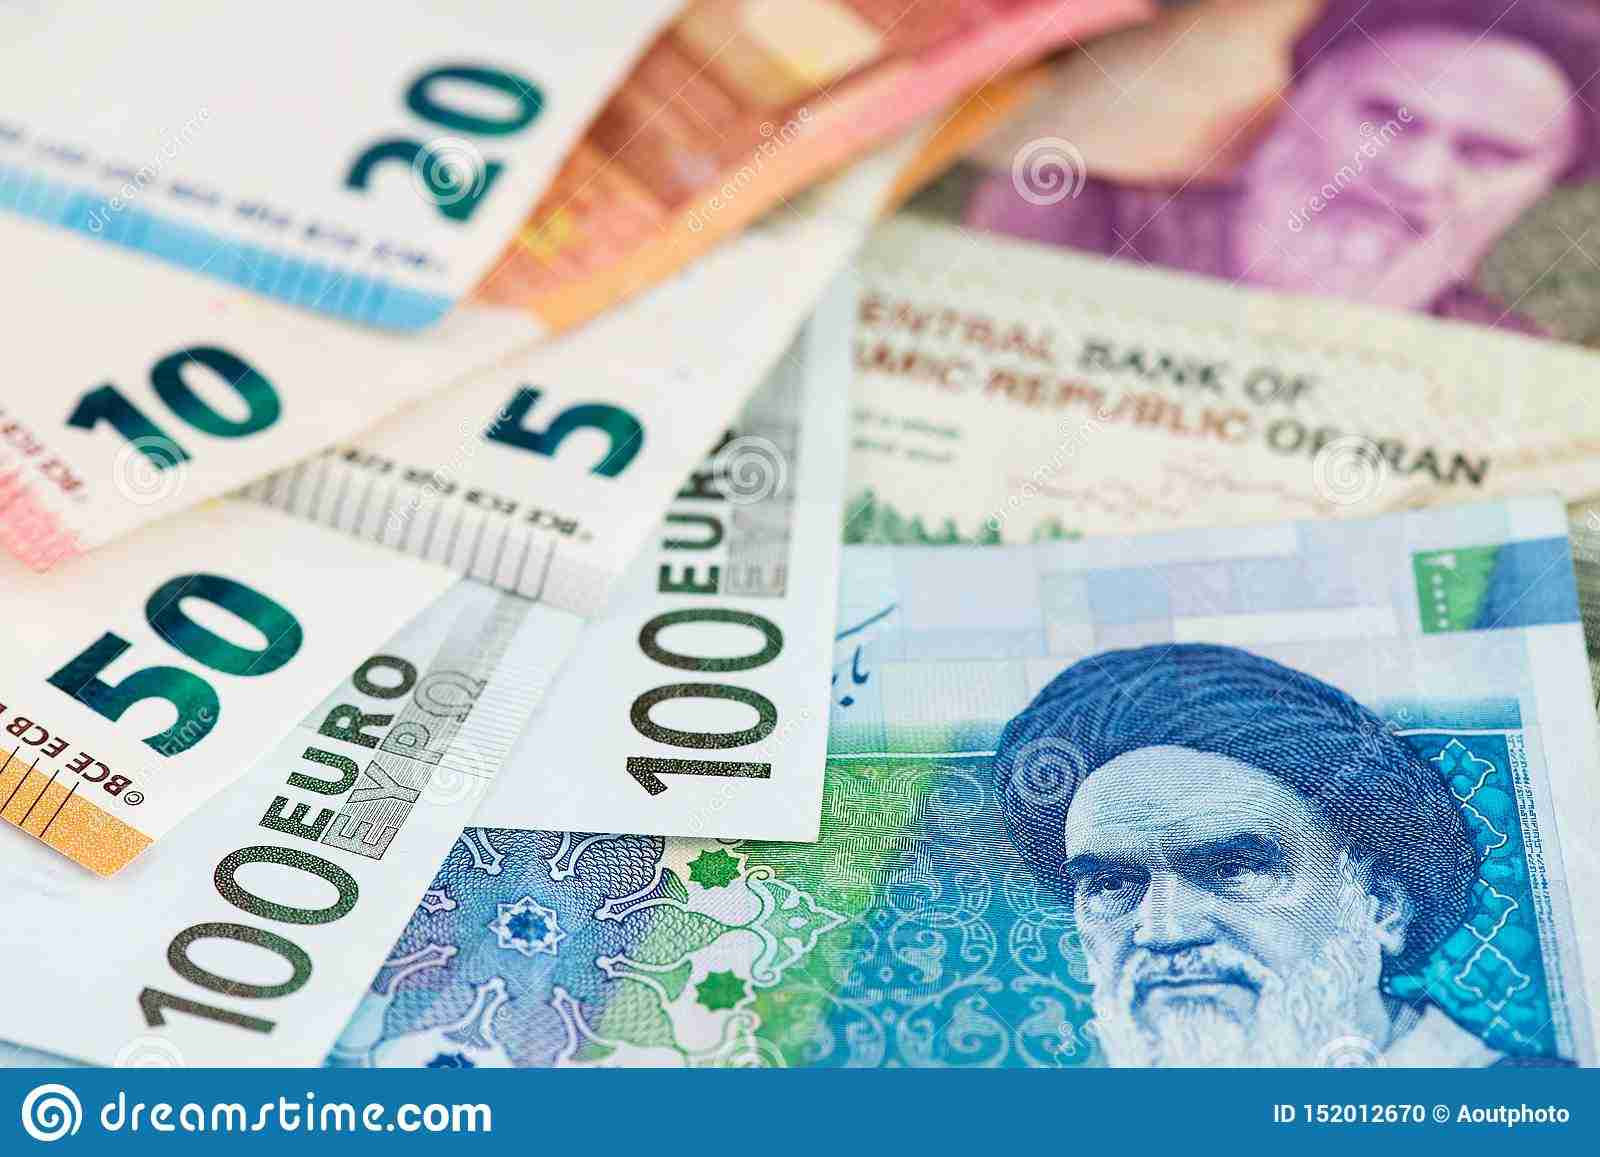 Iranian Rial Again Hits Record Low Amid Tensions With U.S.